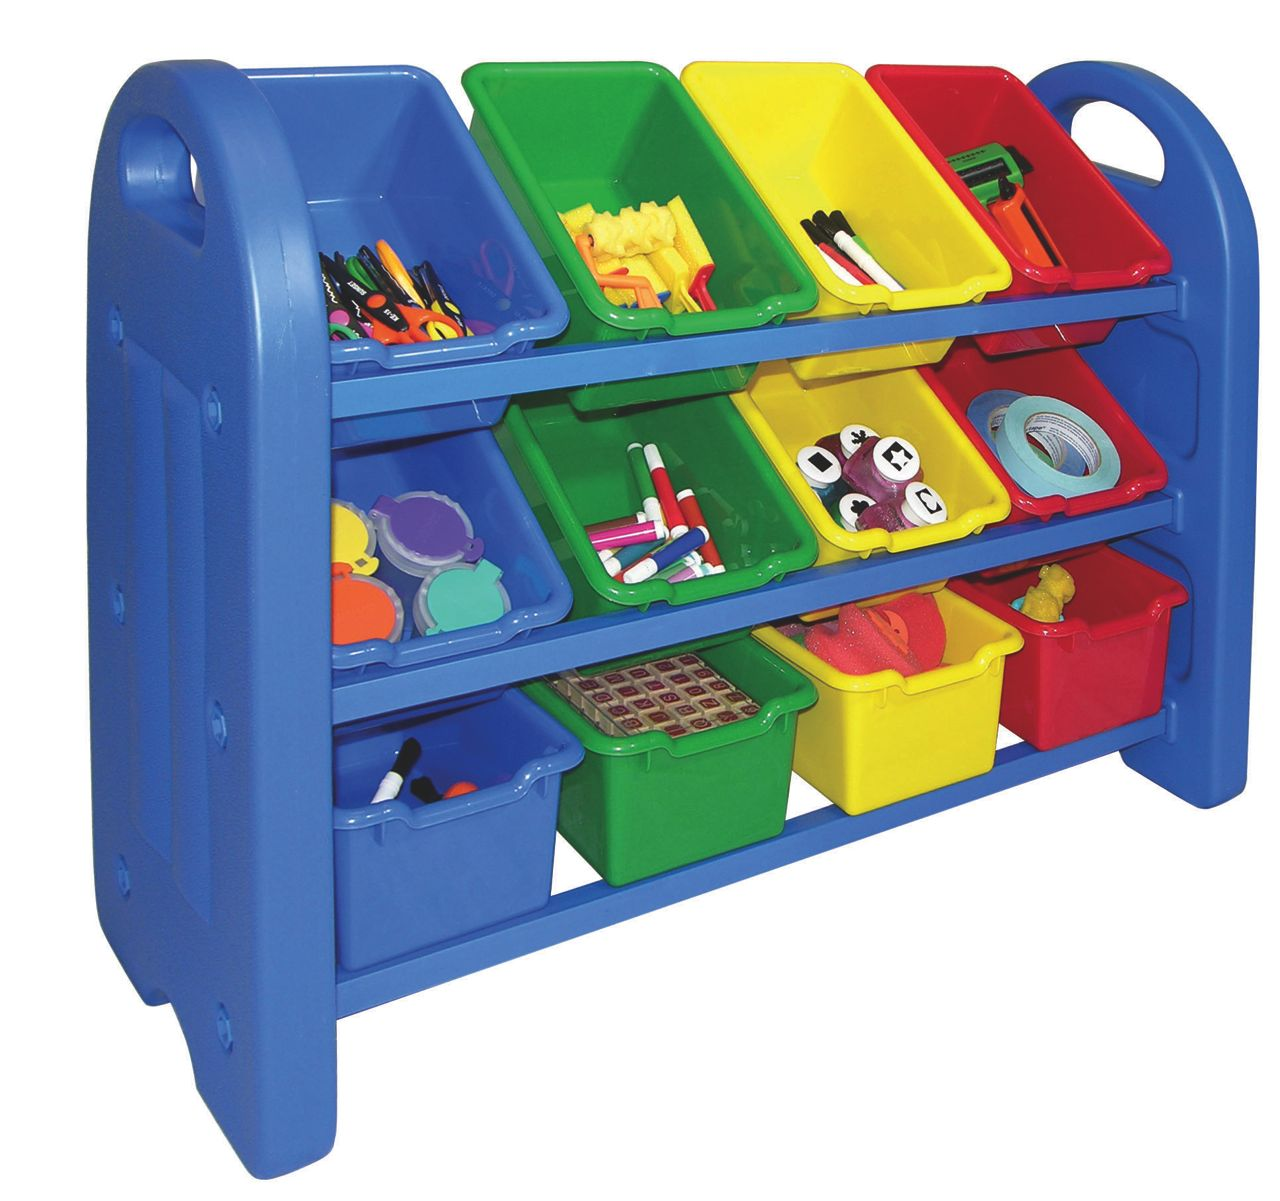 ecr4kids 3 tier storage organizer with bins aaa state of play. Black Bedroom Furniture Sets. Home Design Ideas